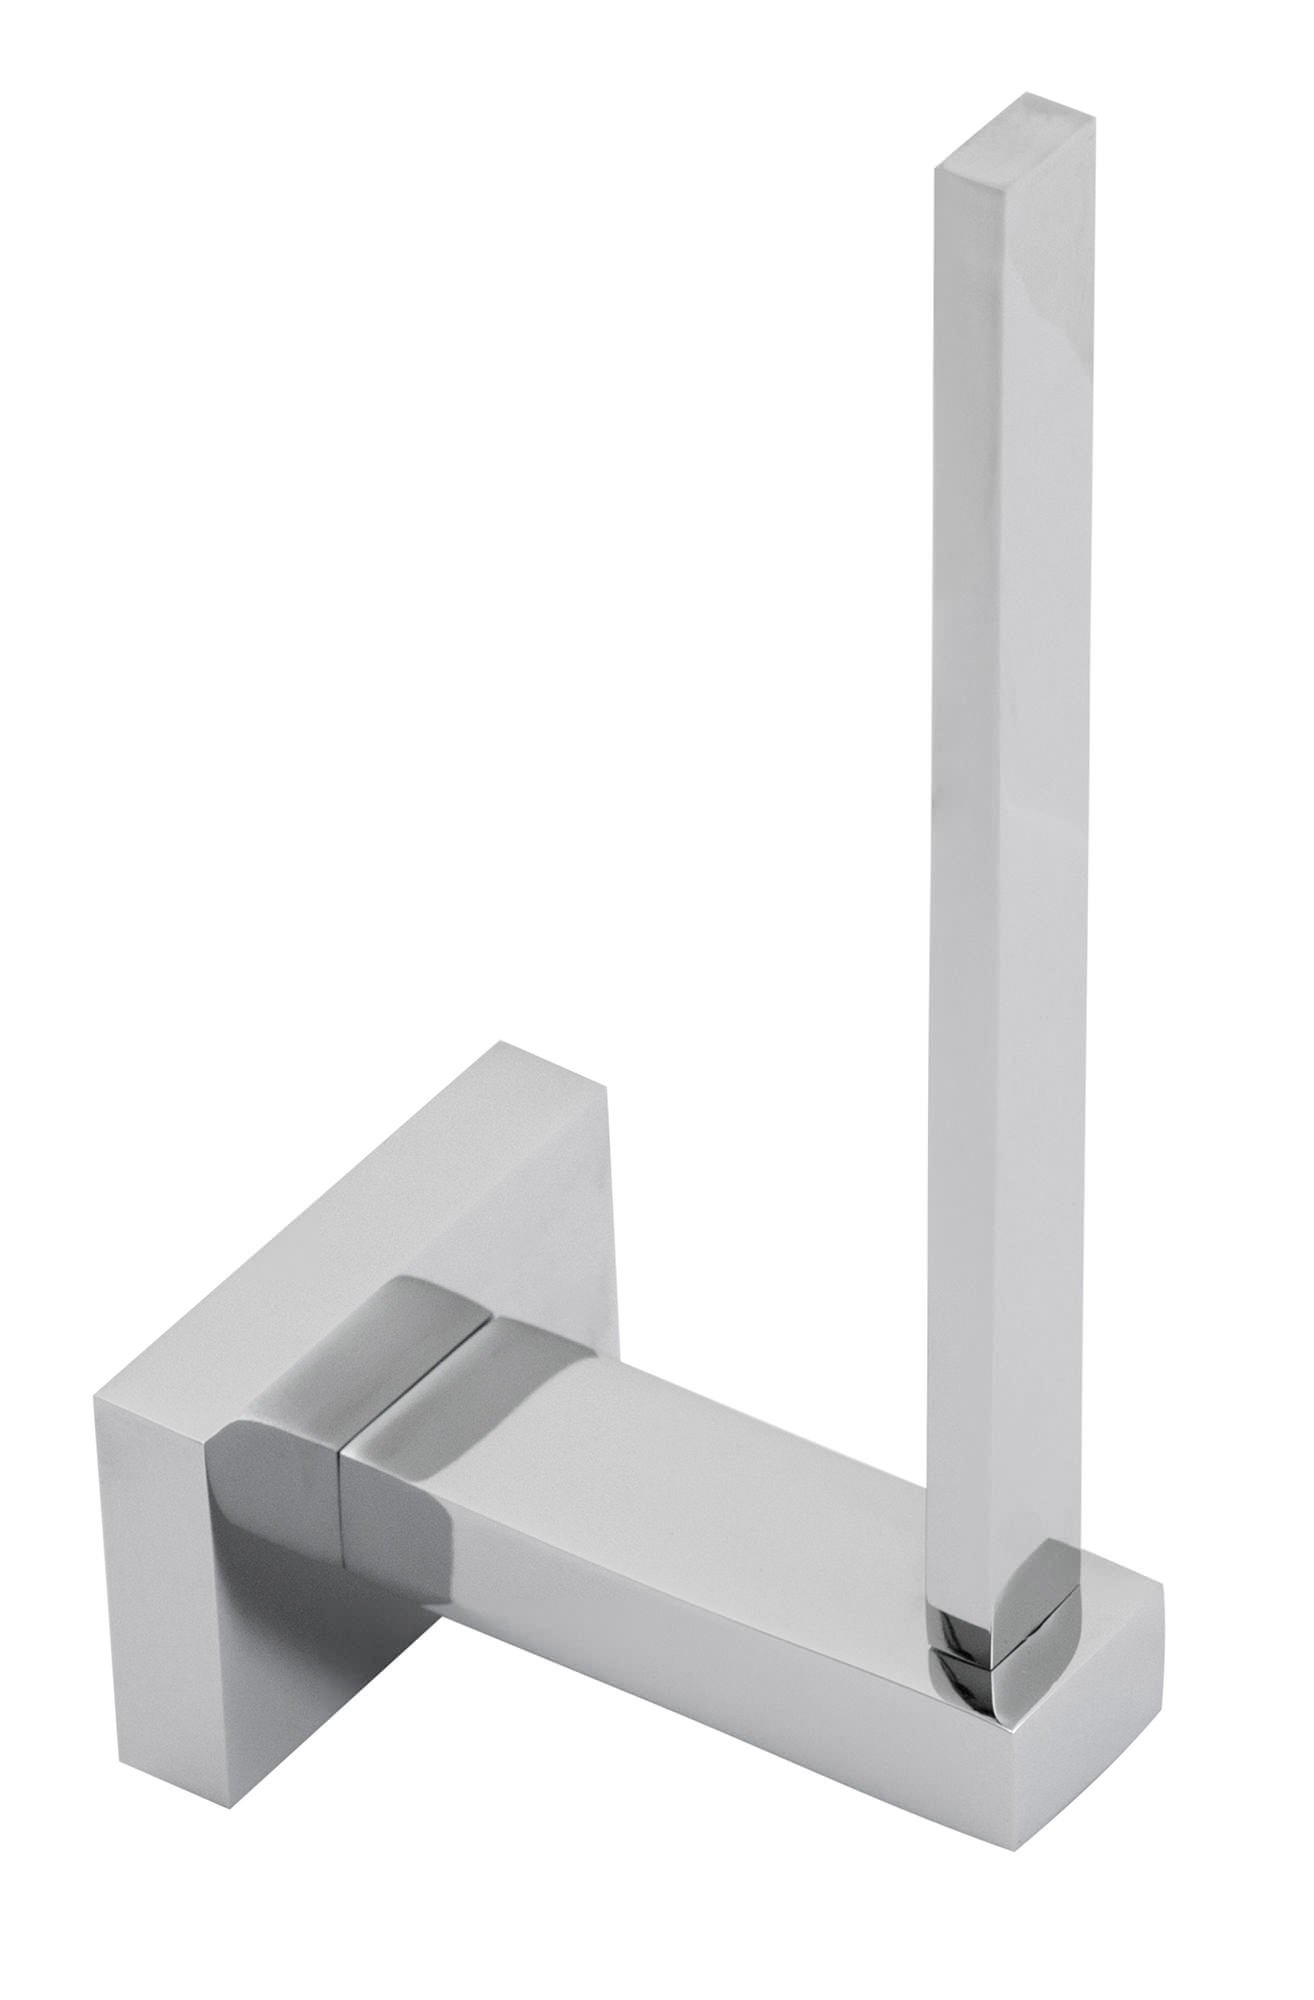 How To Install Toilet Paper Holder In Wall